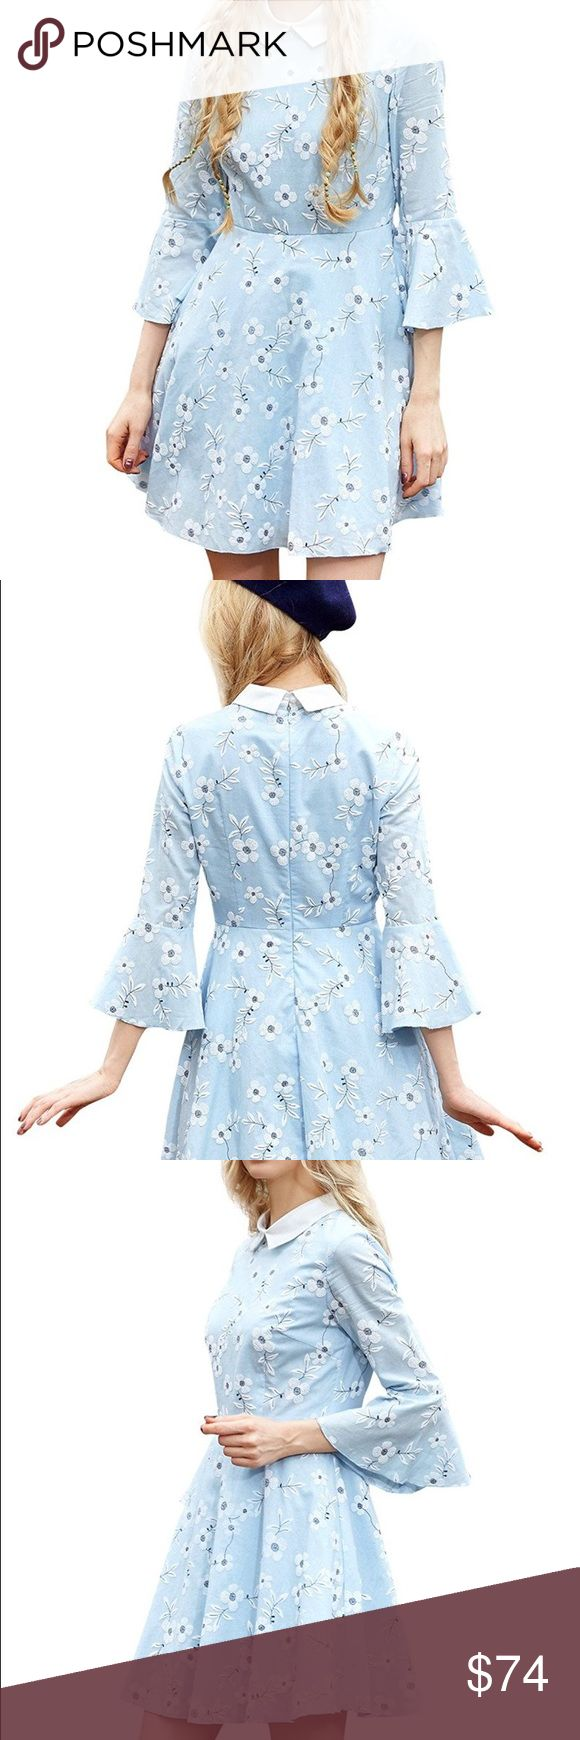 Pale blue dogwood dress Pale blue dress with white flowers and satin-y collar. This is beautiful! If it doesn't sell by Easter, I'm keeping it! Dresses Mini